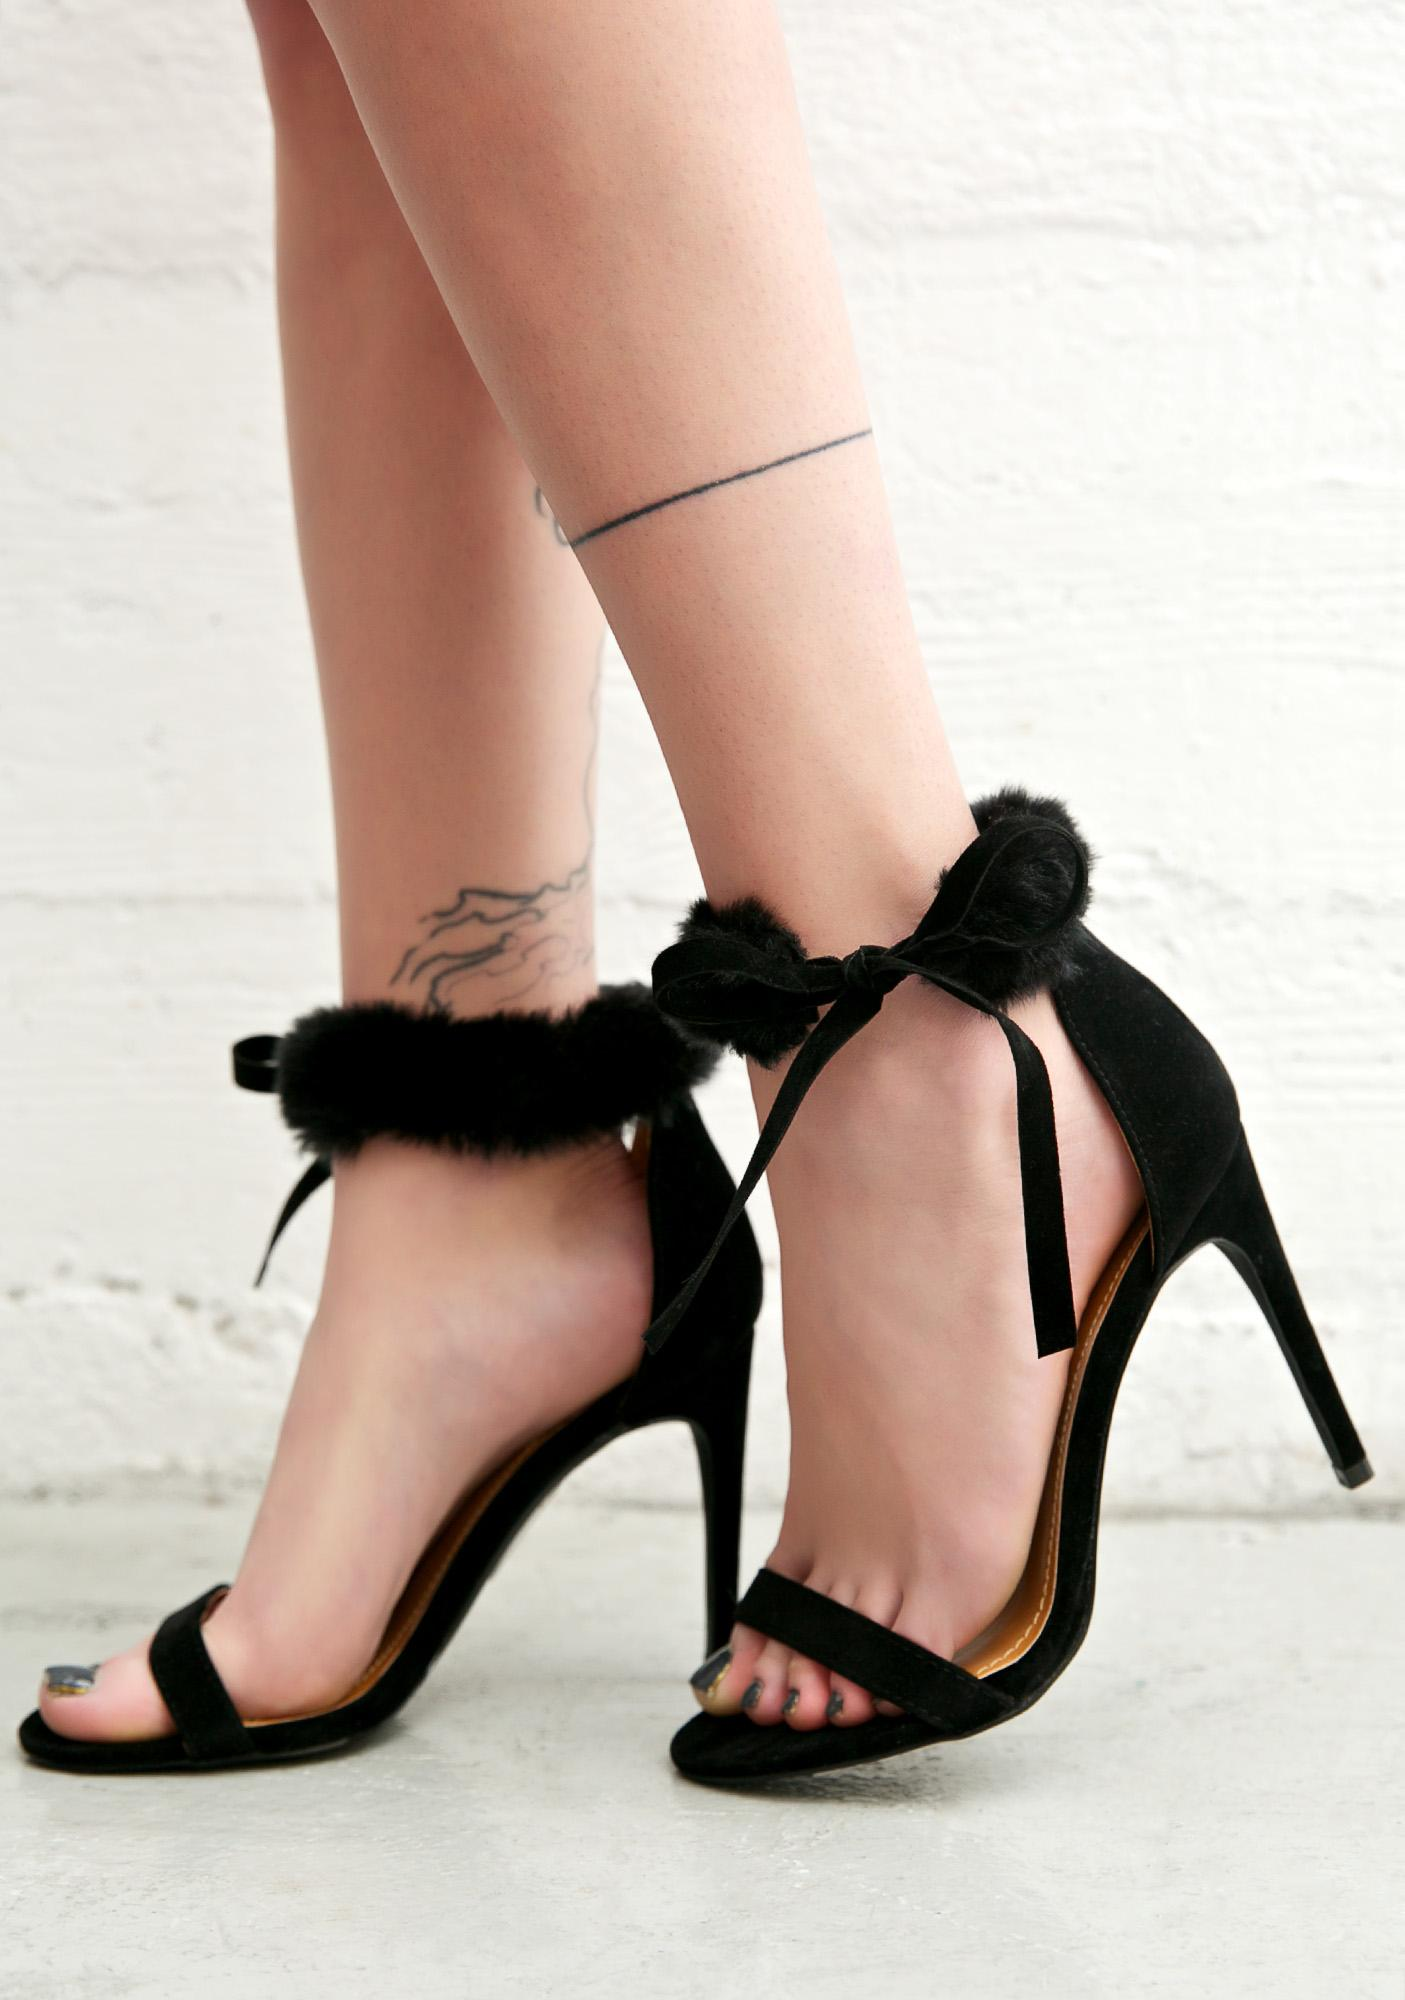 So Risque Fuzzy Heels